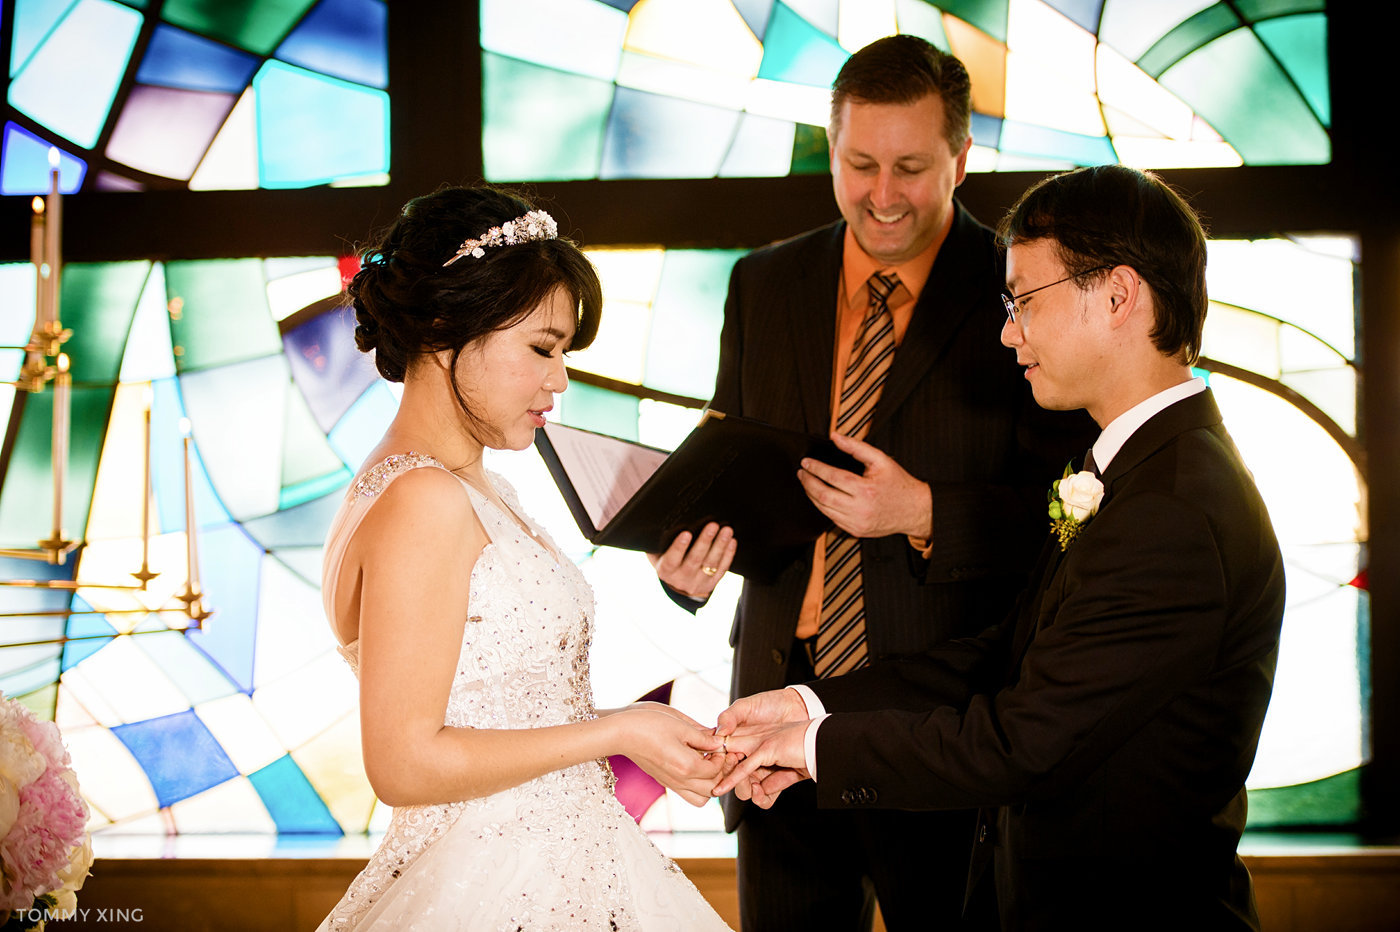 Qinglu Meng & Daozheng Chen Wedding Slideshow-156-E.JPG